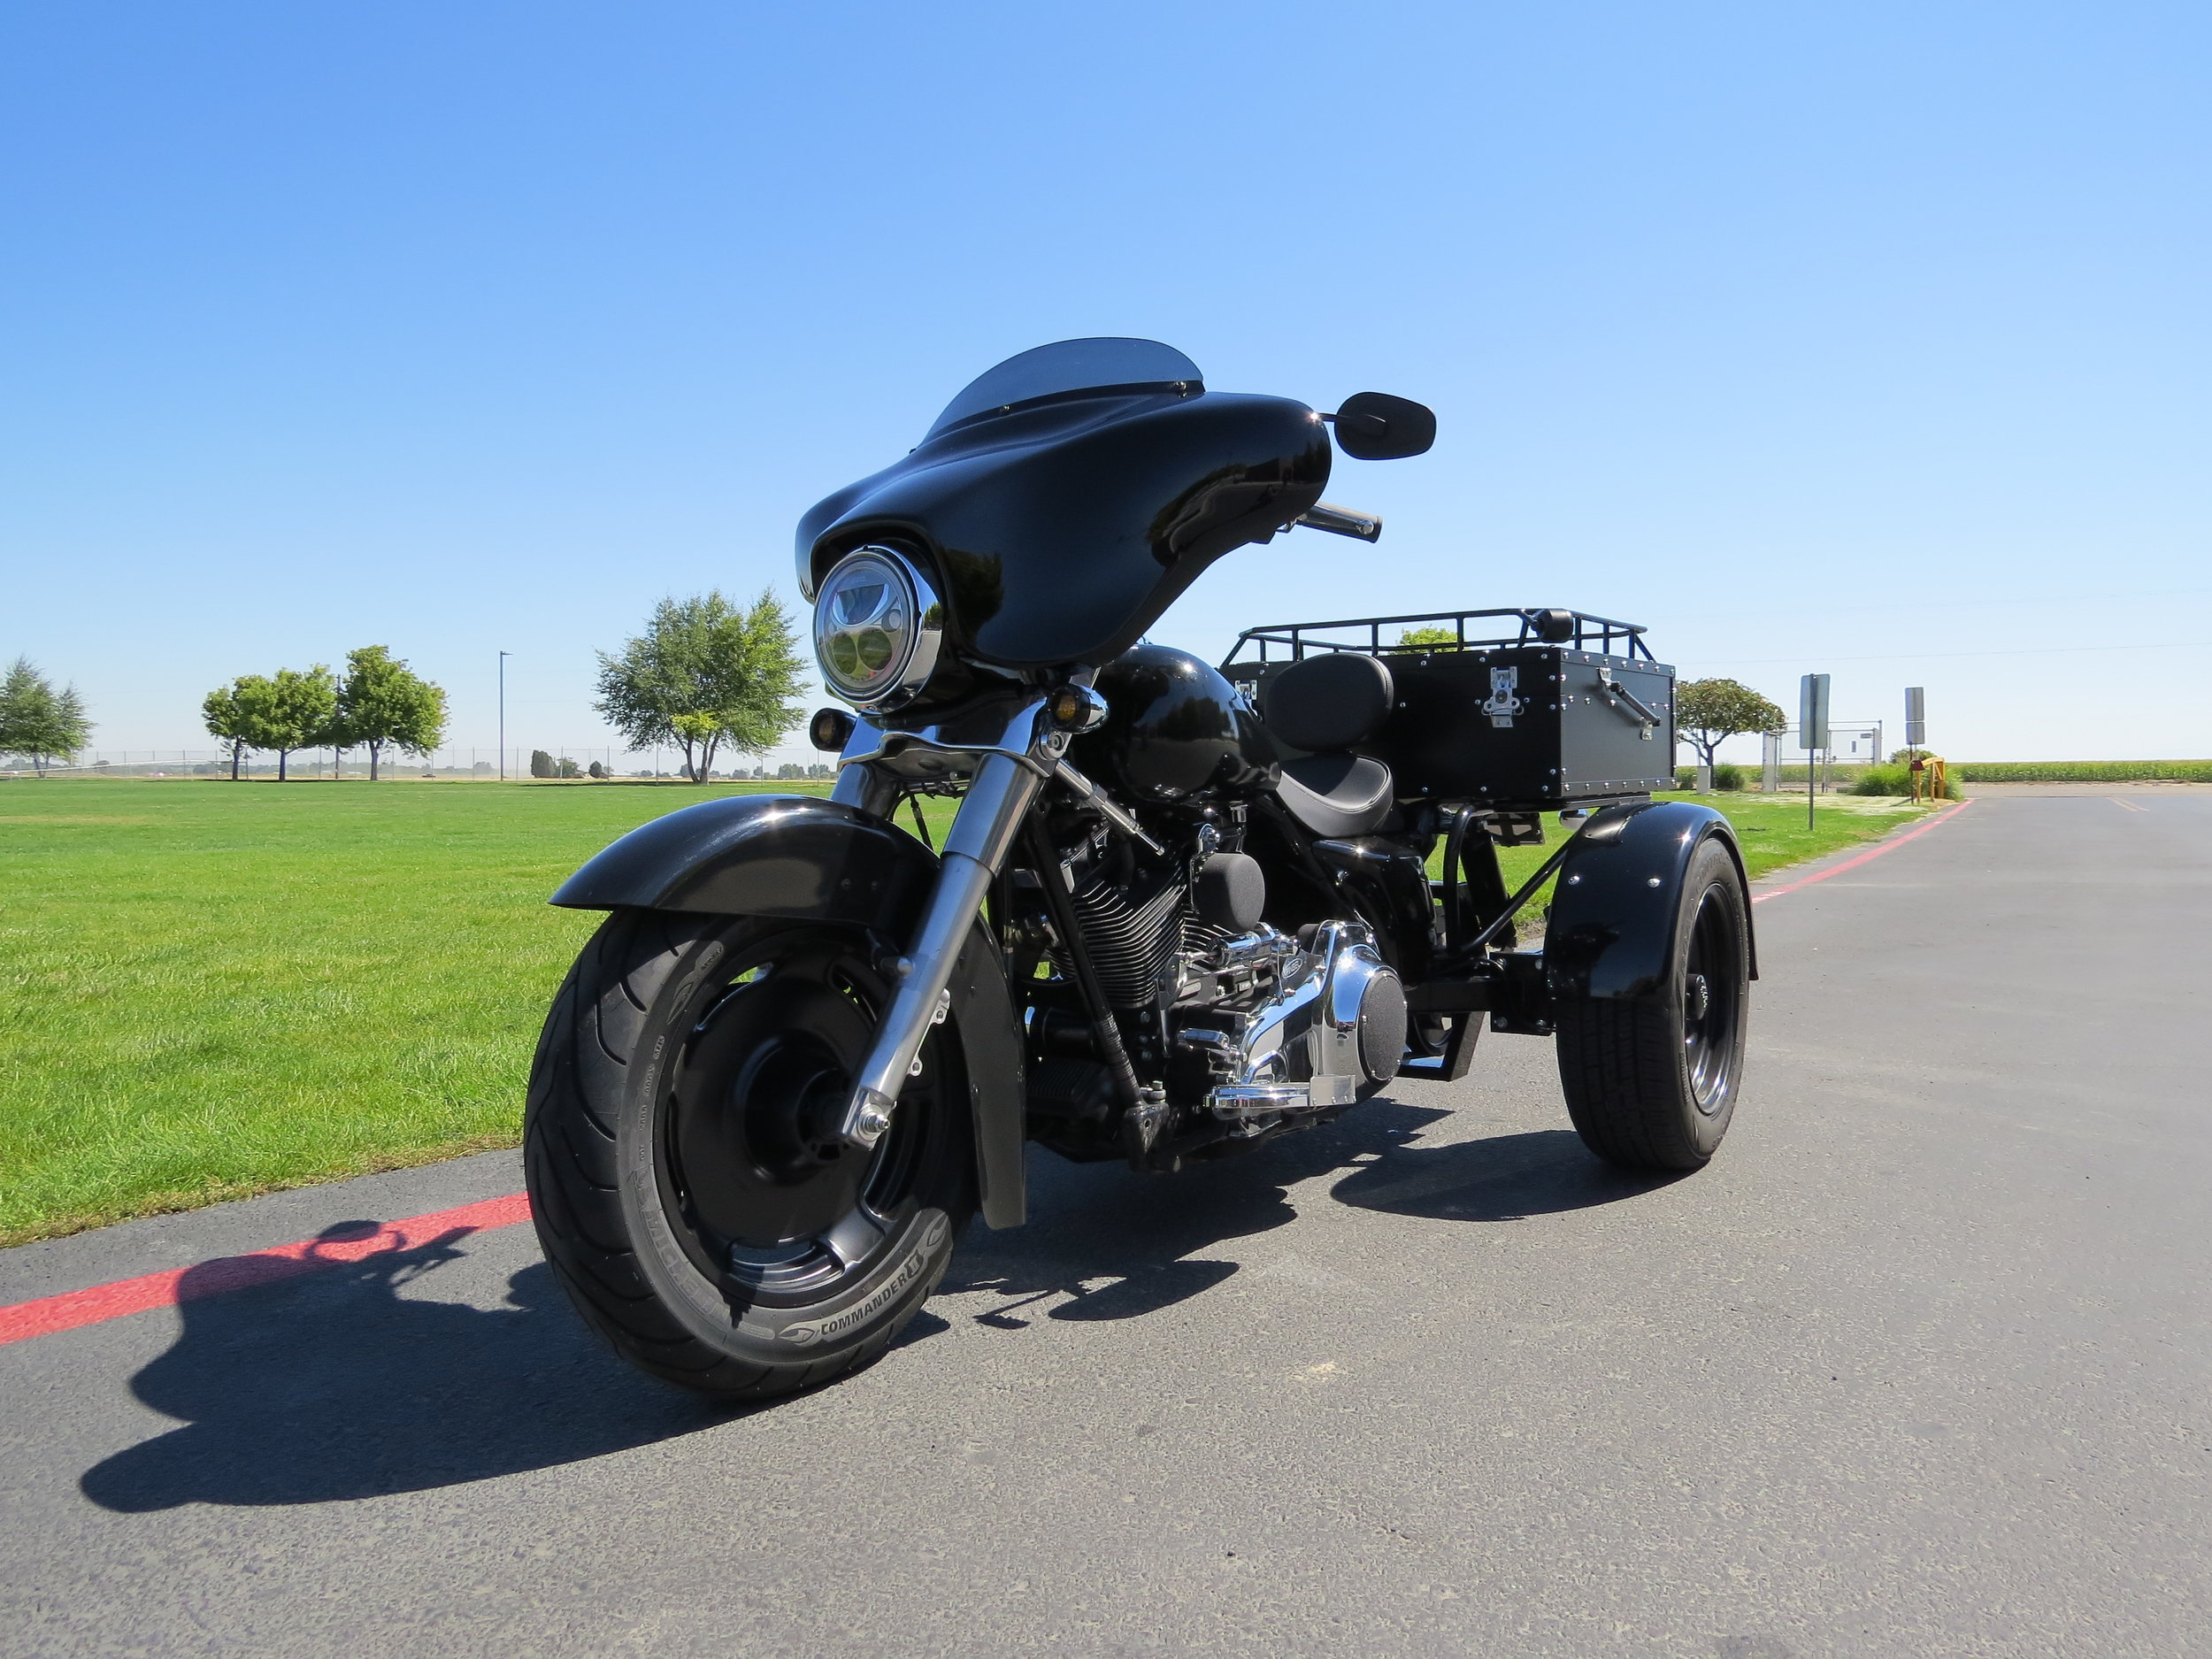 2007 HARLEY DAVIDSON TRIKE CONVERSION - COMPLETED AND ROLLING DOWN THE ROADS!